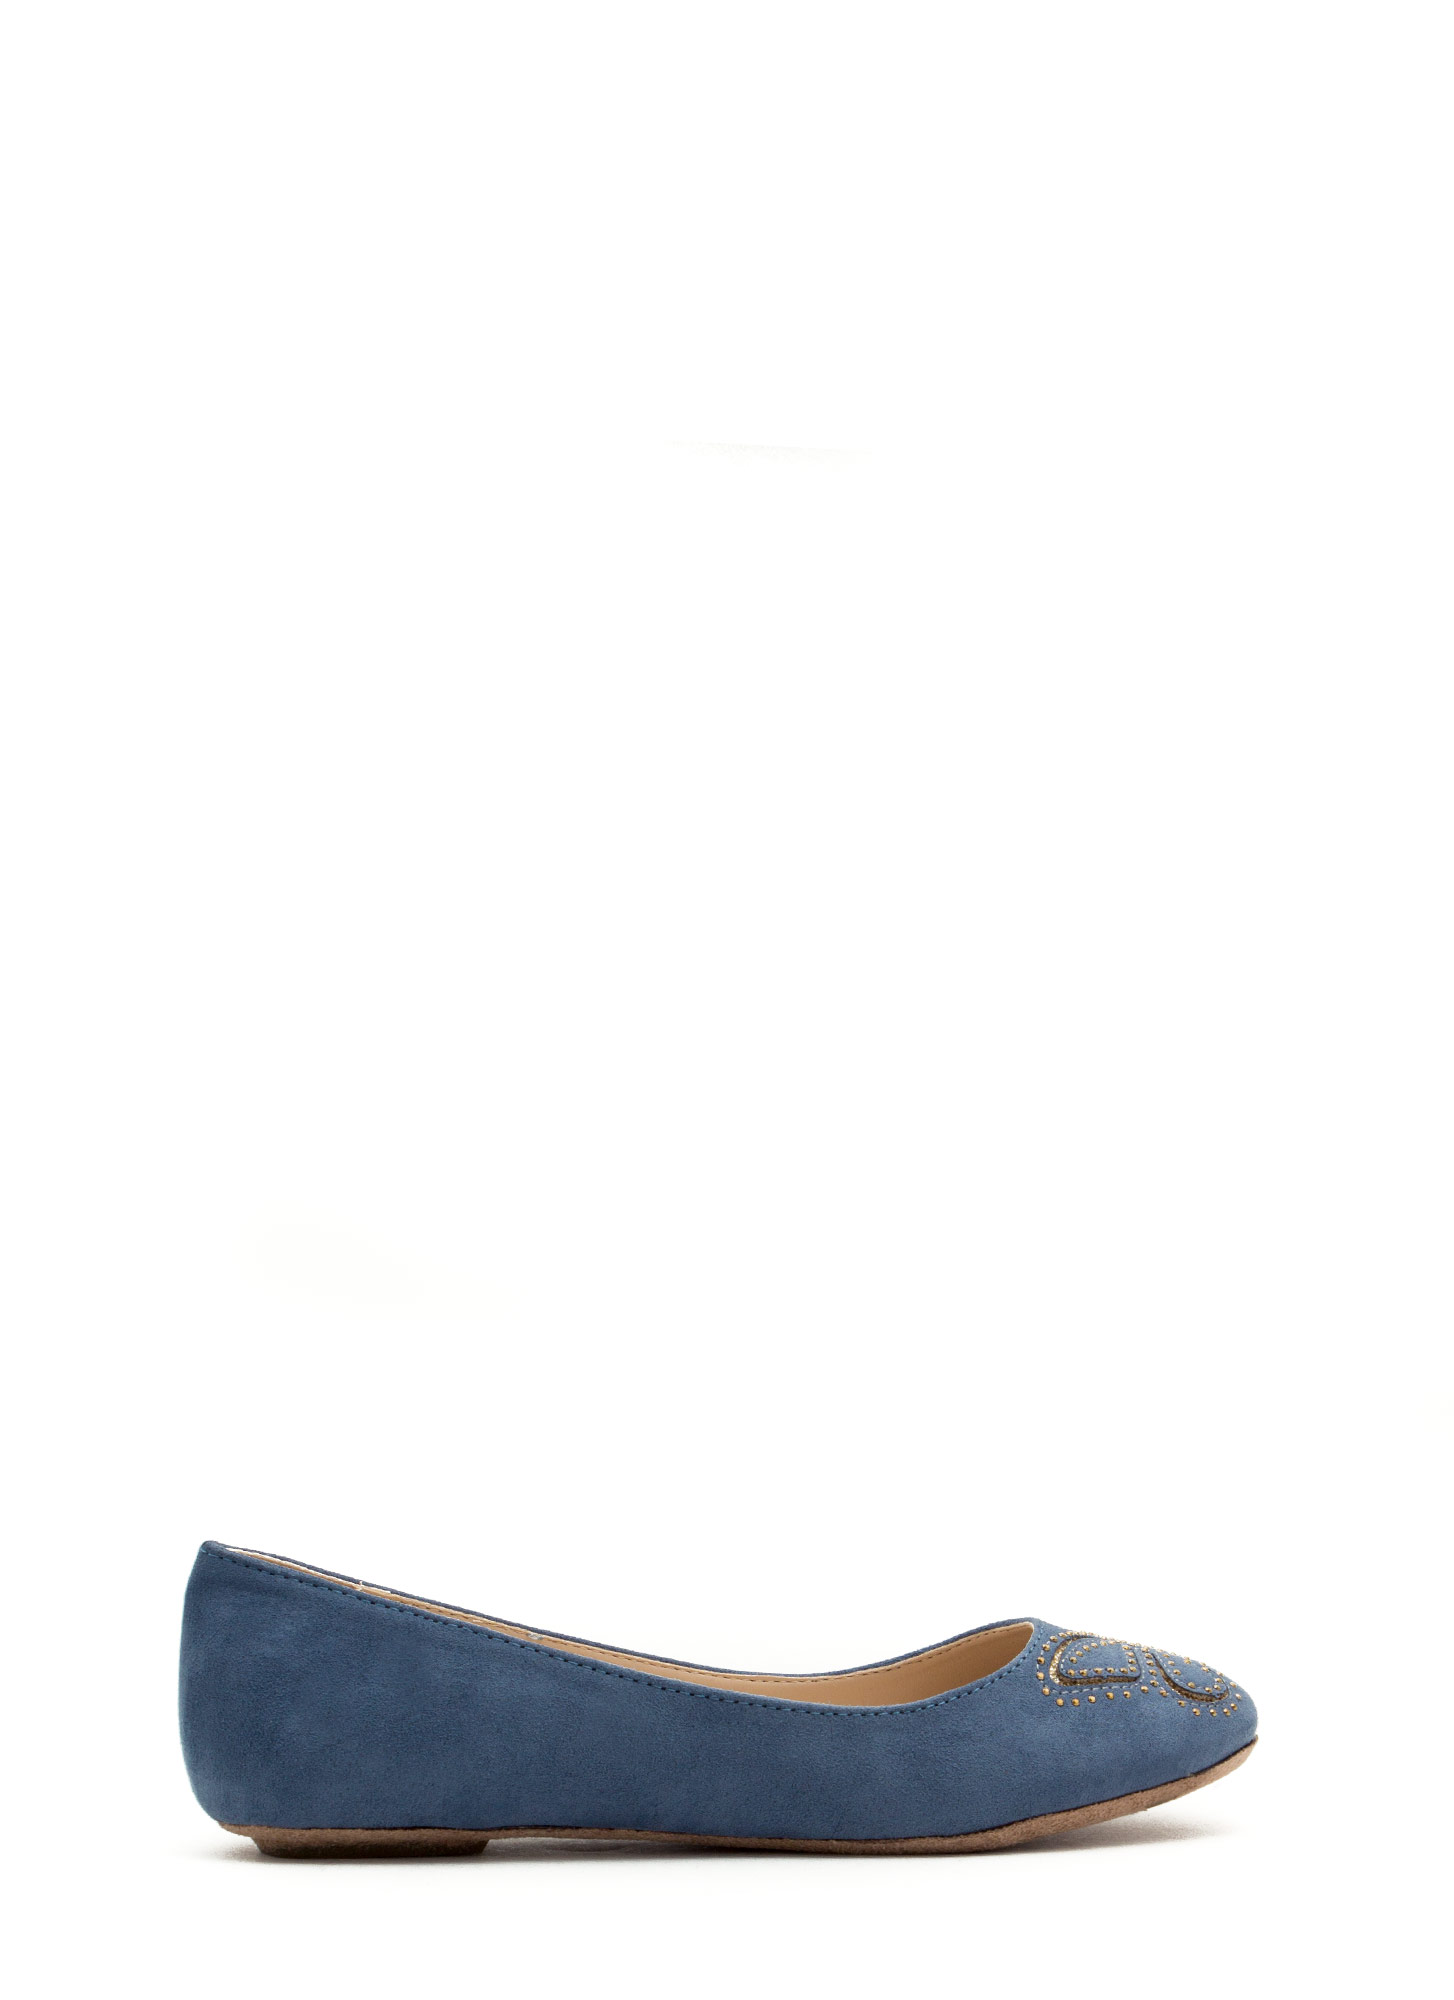 I'm So Butter-fly Flats BLUE